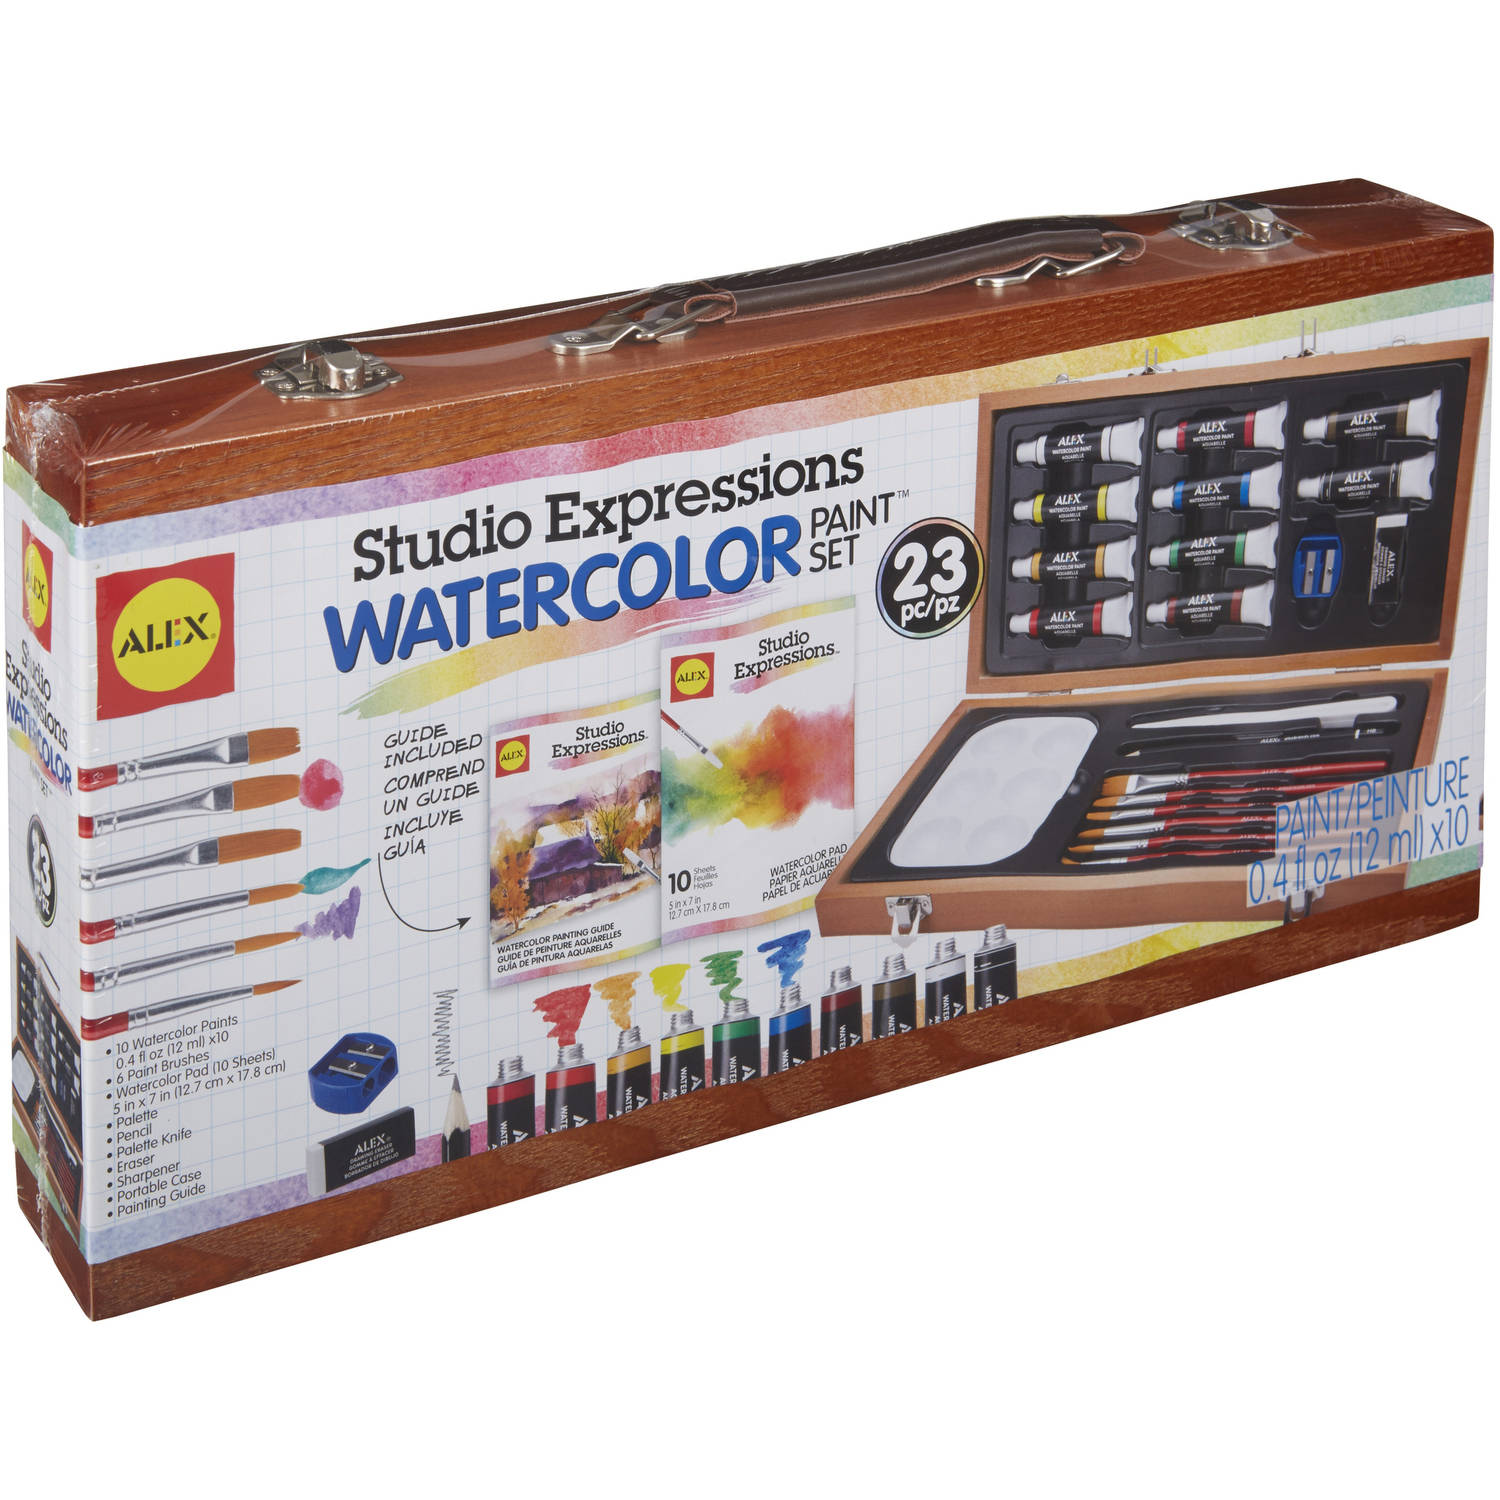 ALEX Art Studio Expressions Watercolor Painting Set by Alex Brands